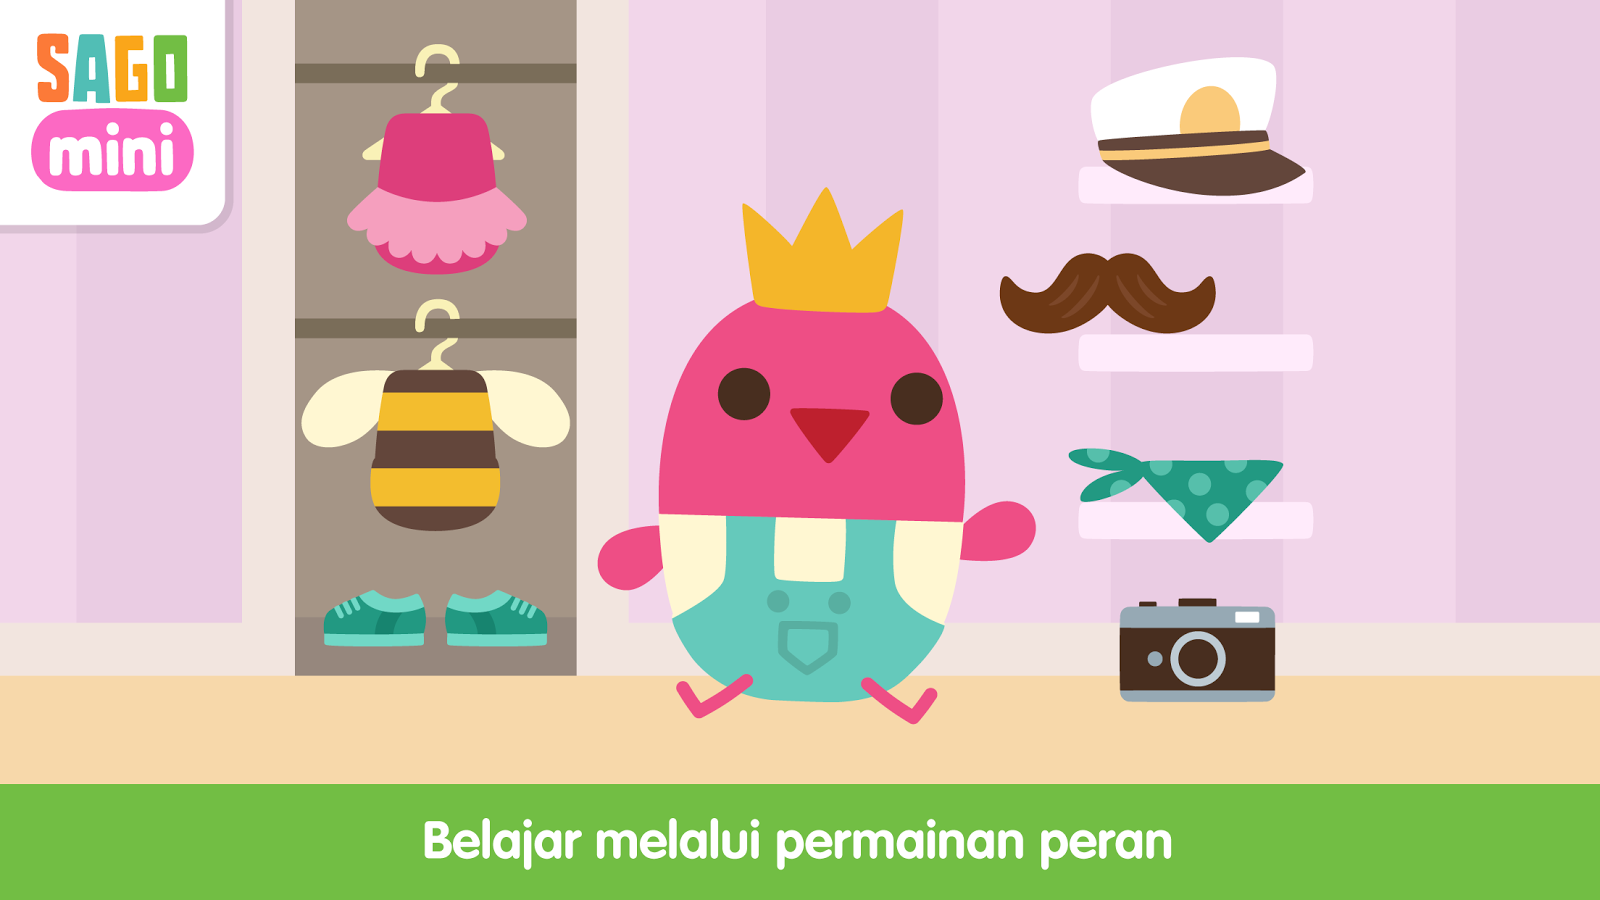 Bayi Sago Mini Apl Android Di Google Play